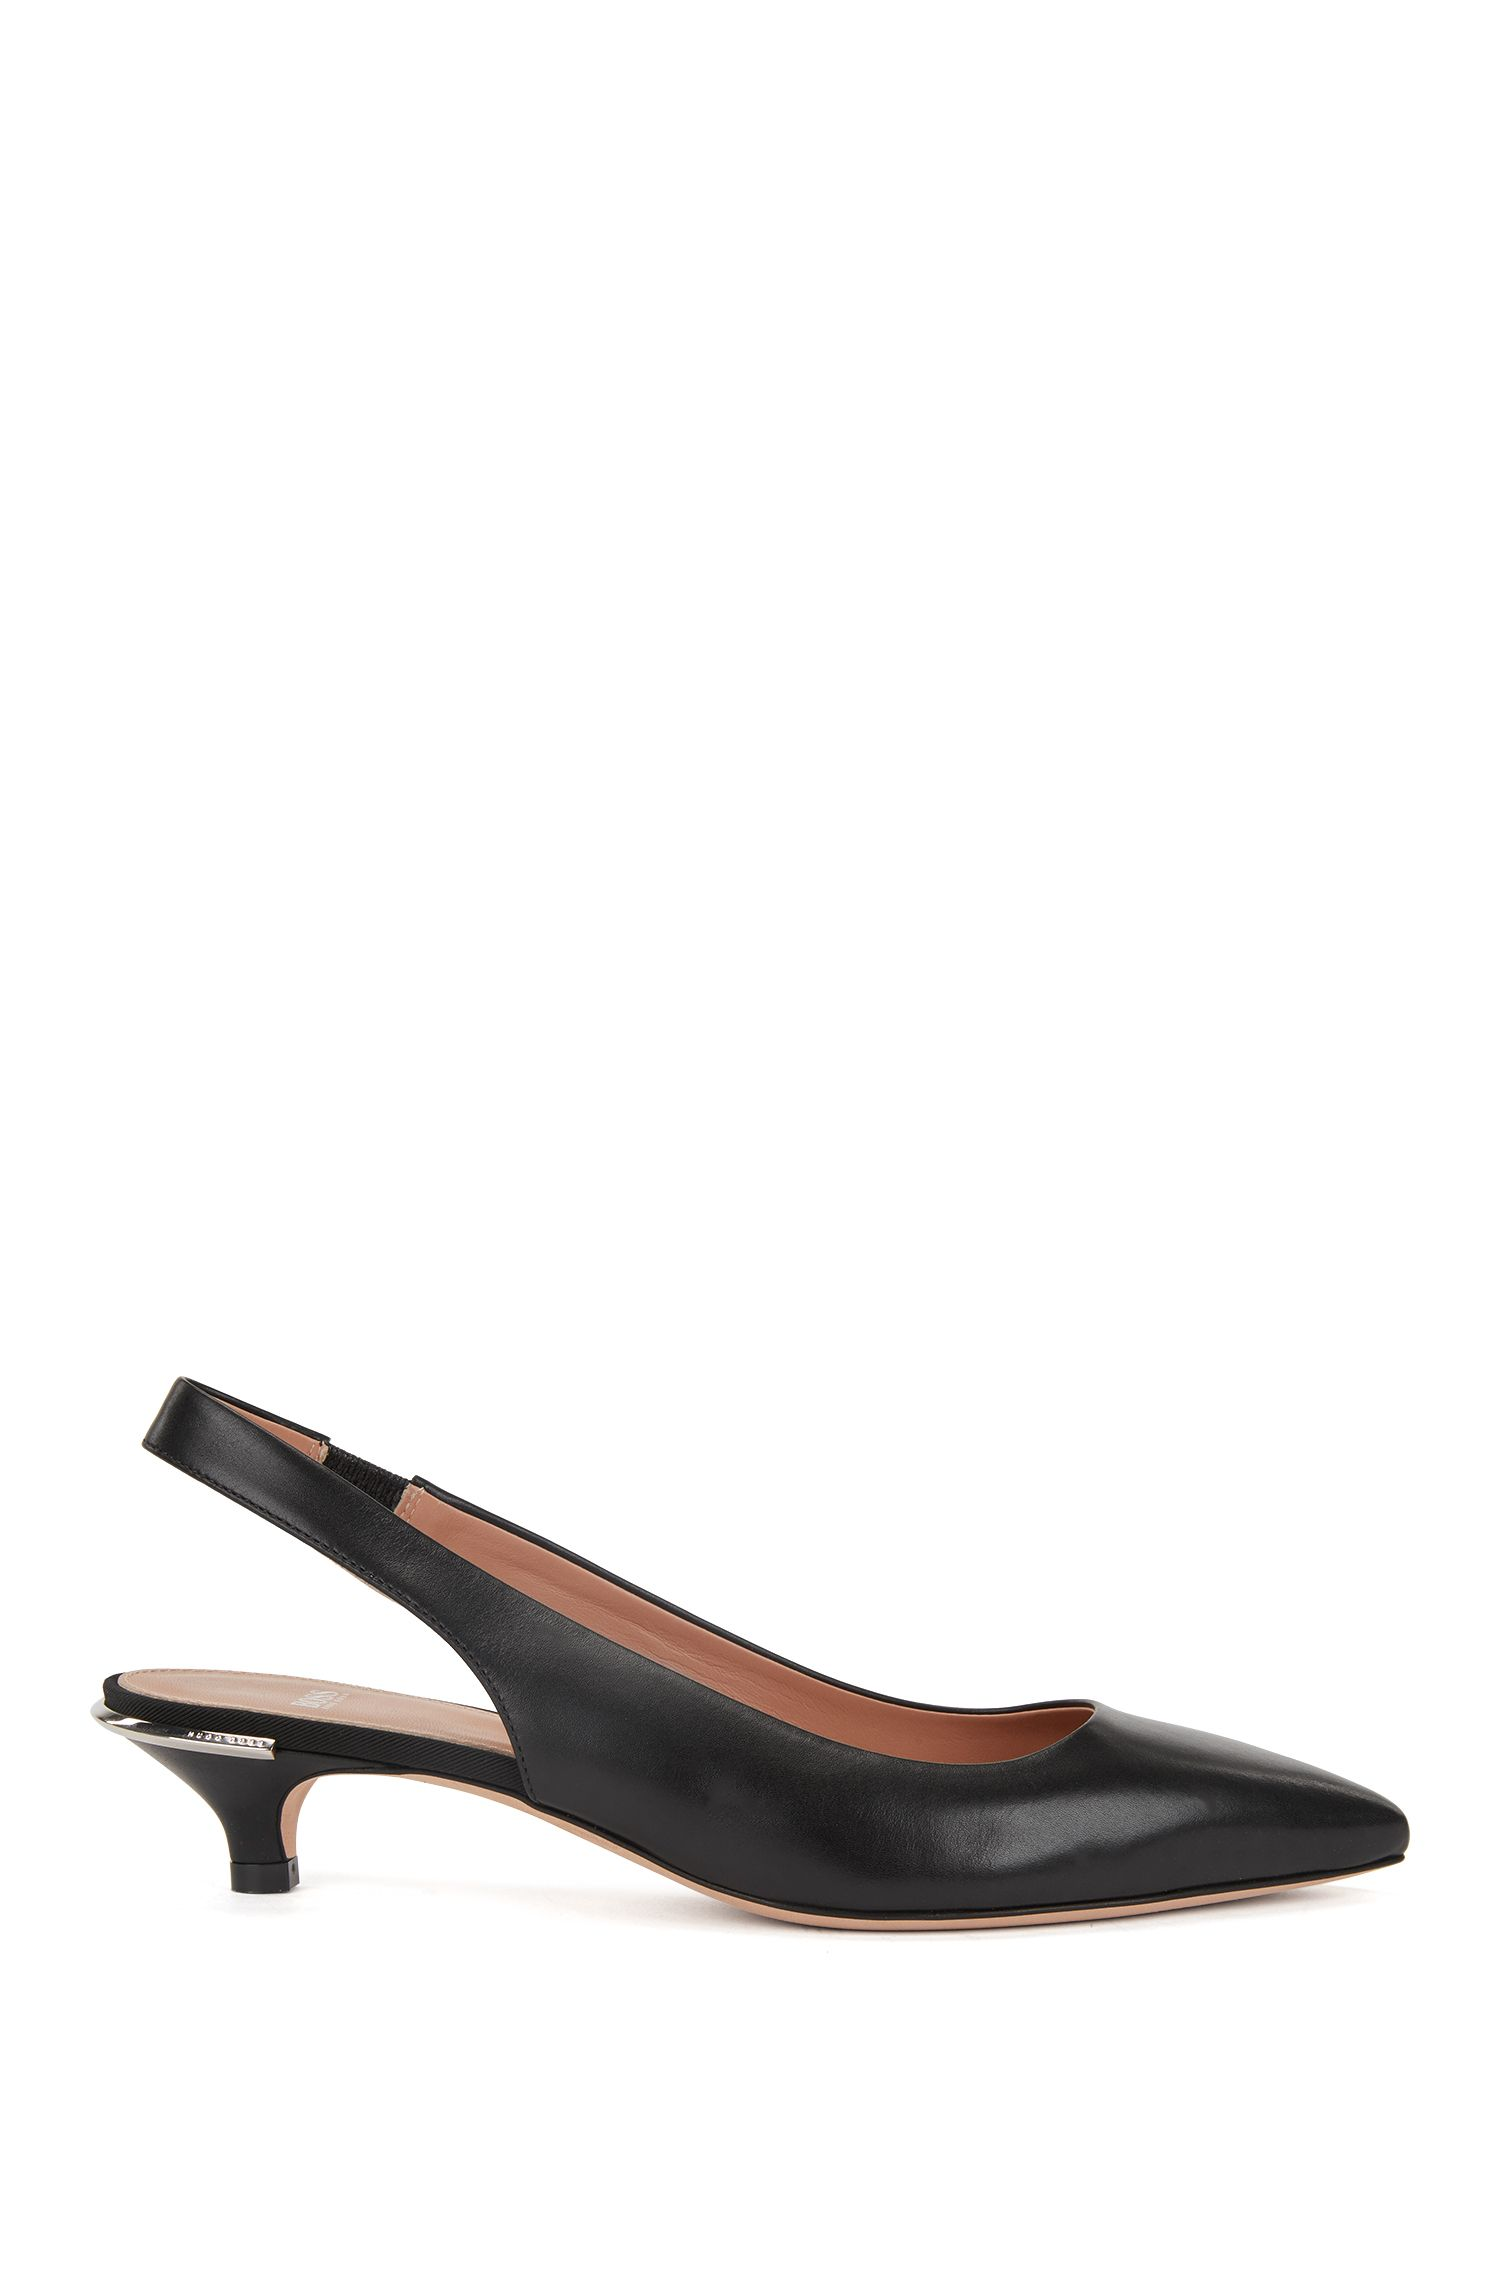 Calf-leather pumps with silver-trimmed kitten heel